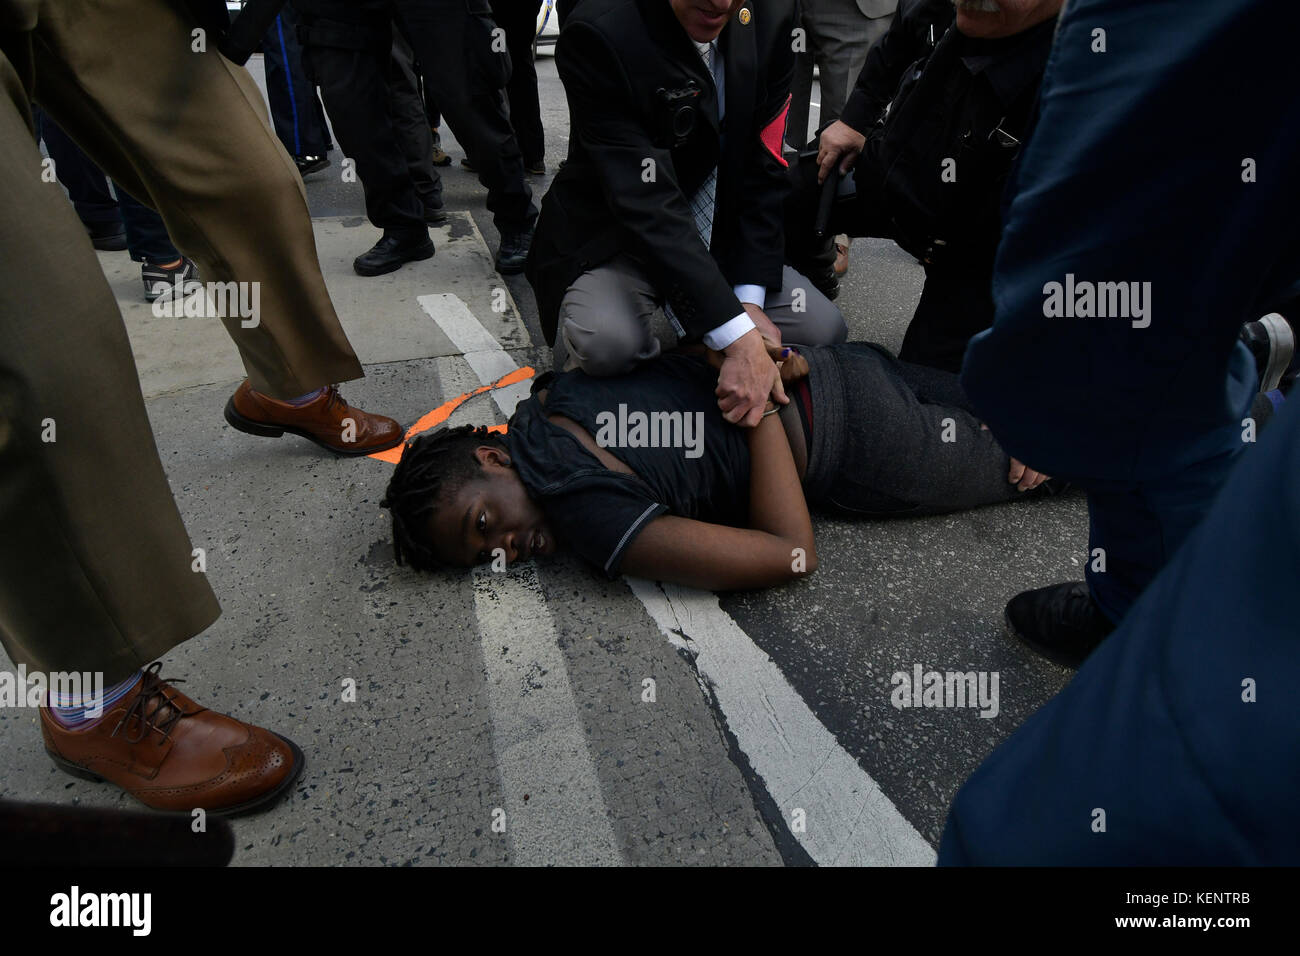 Philadelphia, PA., USA. 21st October, 2017. Protestors with REAL Justice Philadelphia confront police  on October - Stock Image